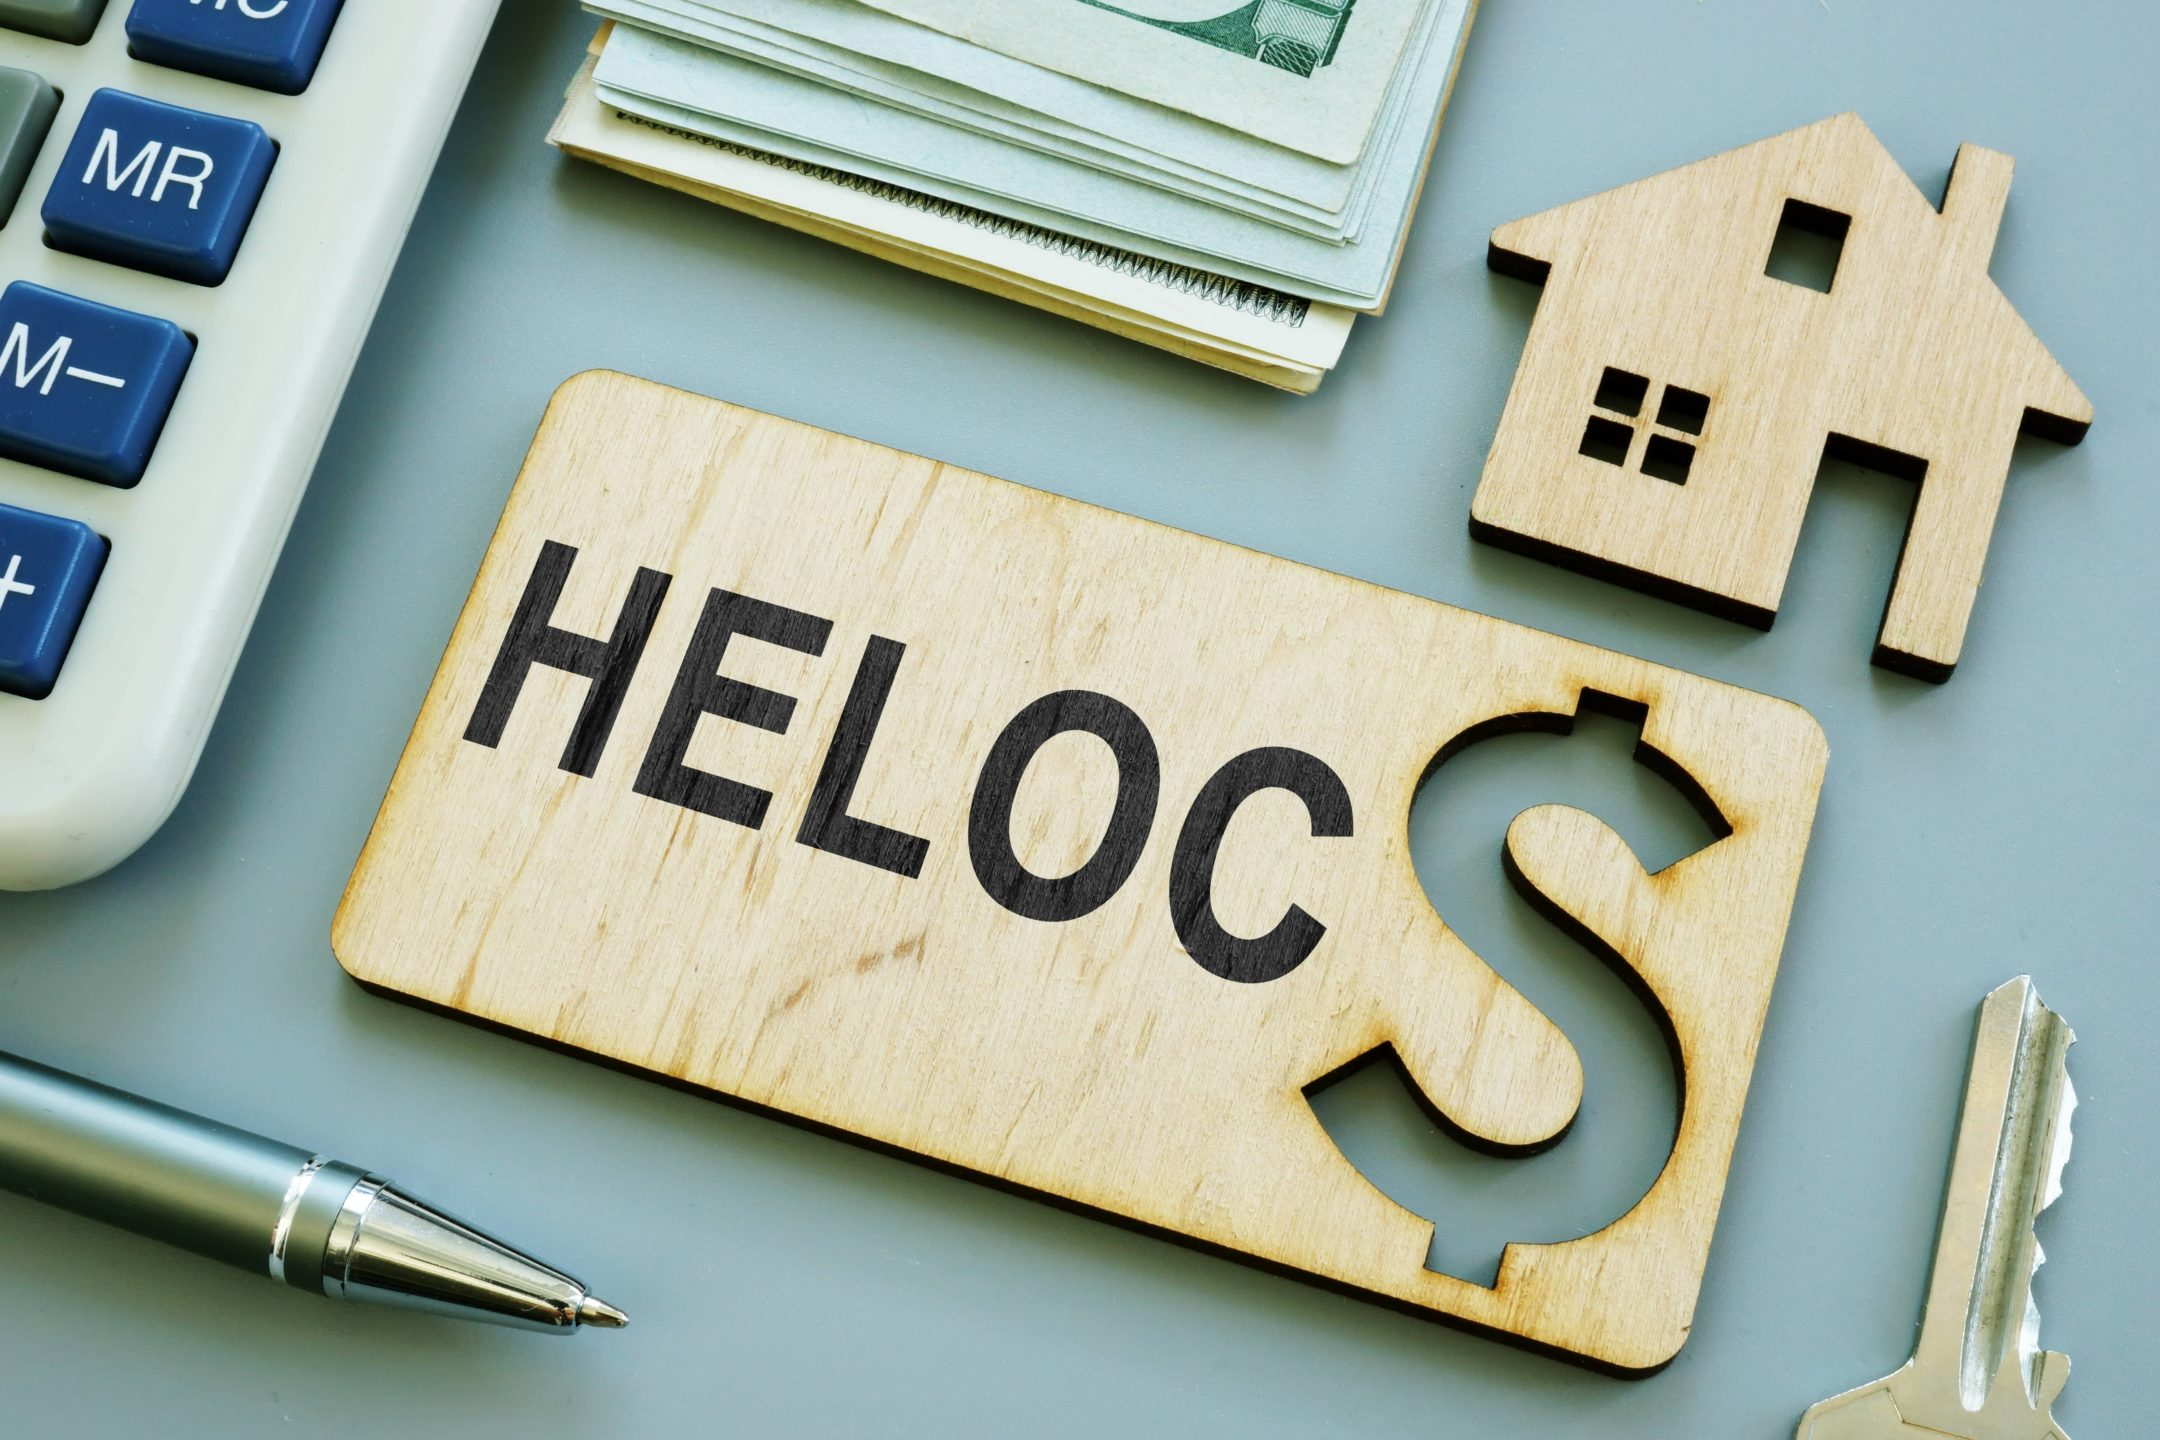 Wooden heloc sign with a dollar sign carved into laid out on a table with a wooden house and calculator.